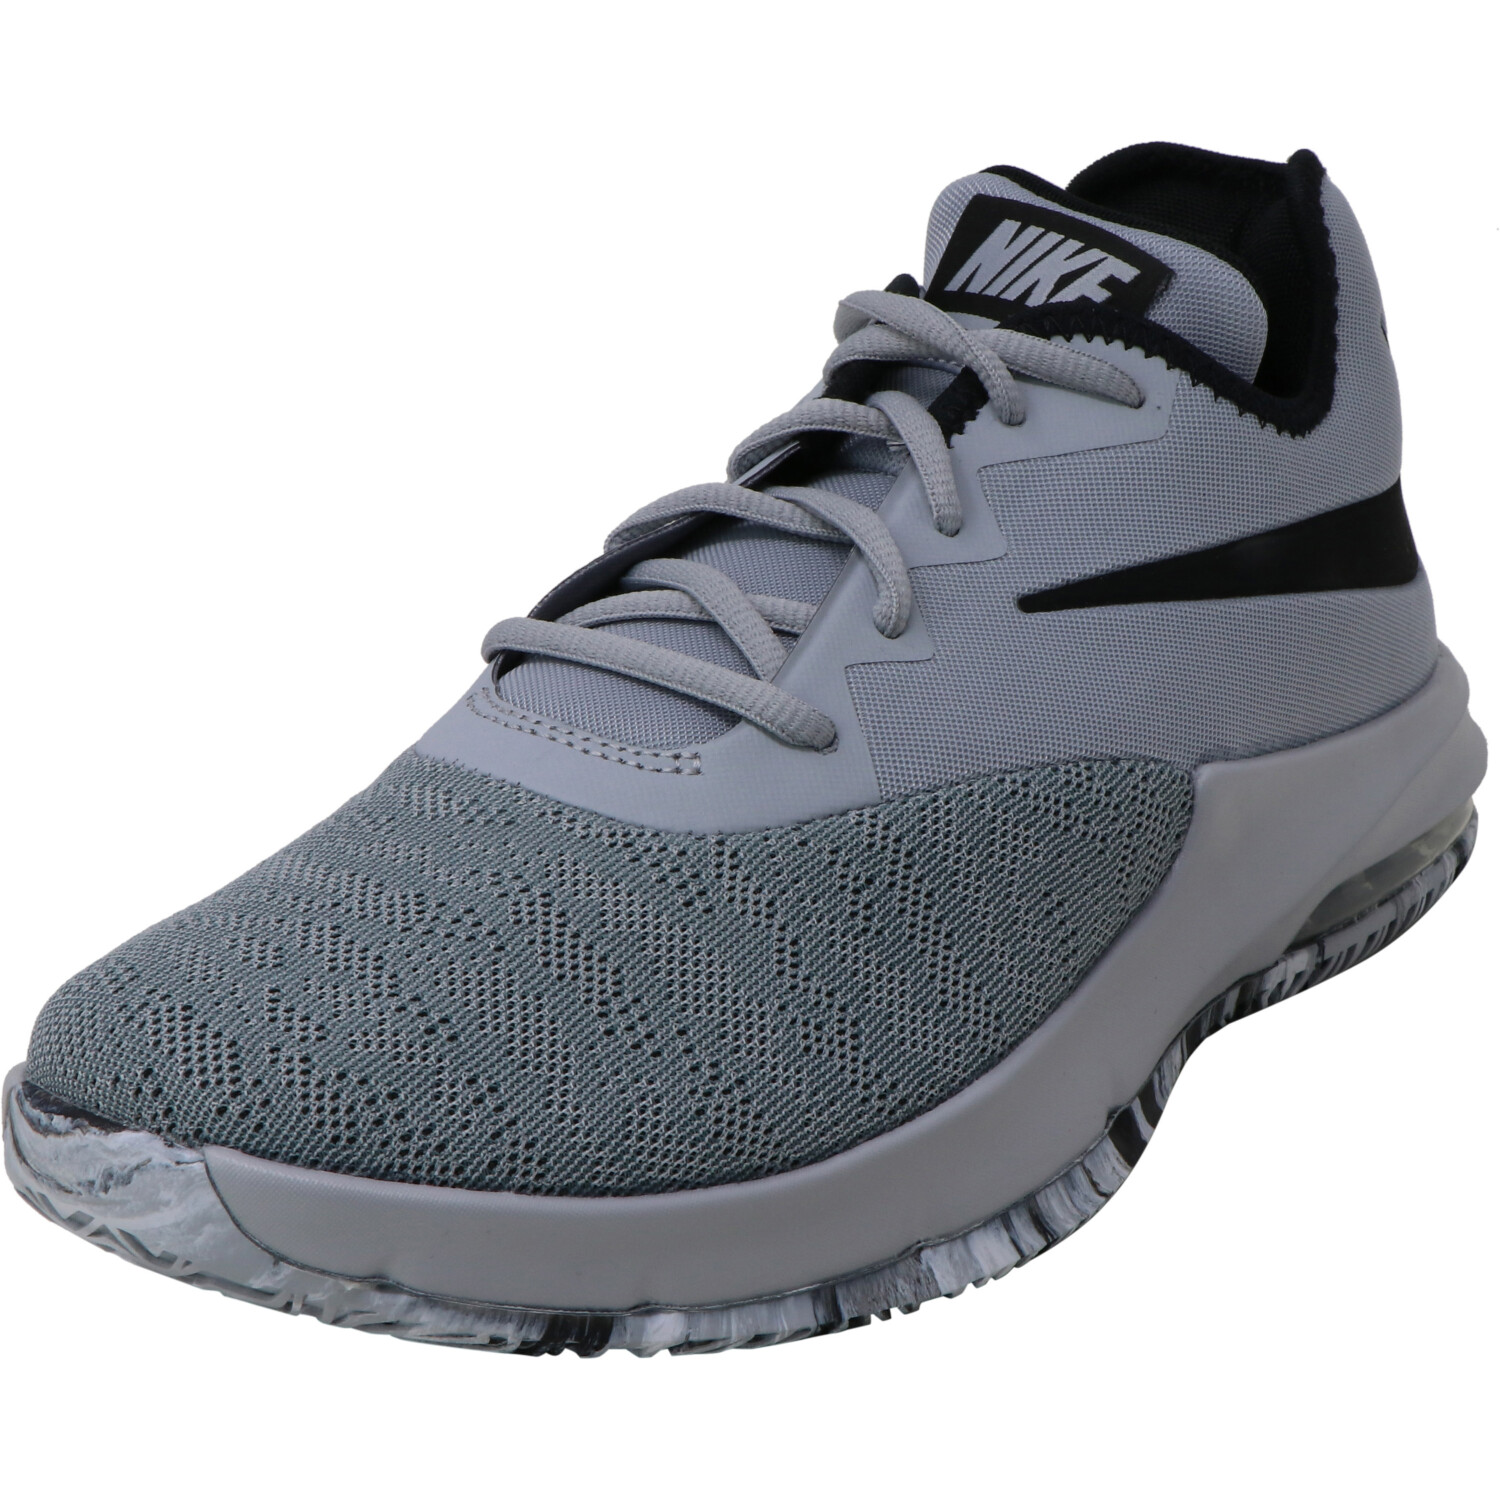 Nike Air Max Infuriate 3 Low Wolf Grey / Black Cool Ankle-High Mesh Basketball - 9.5M 8M